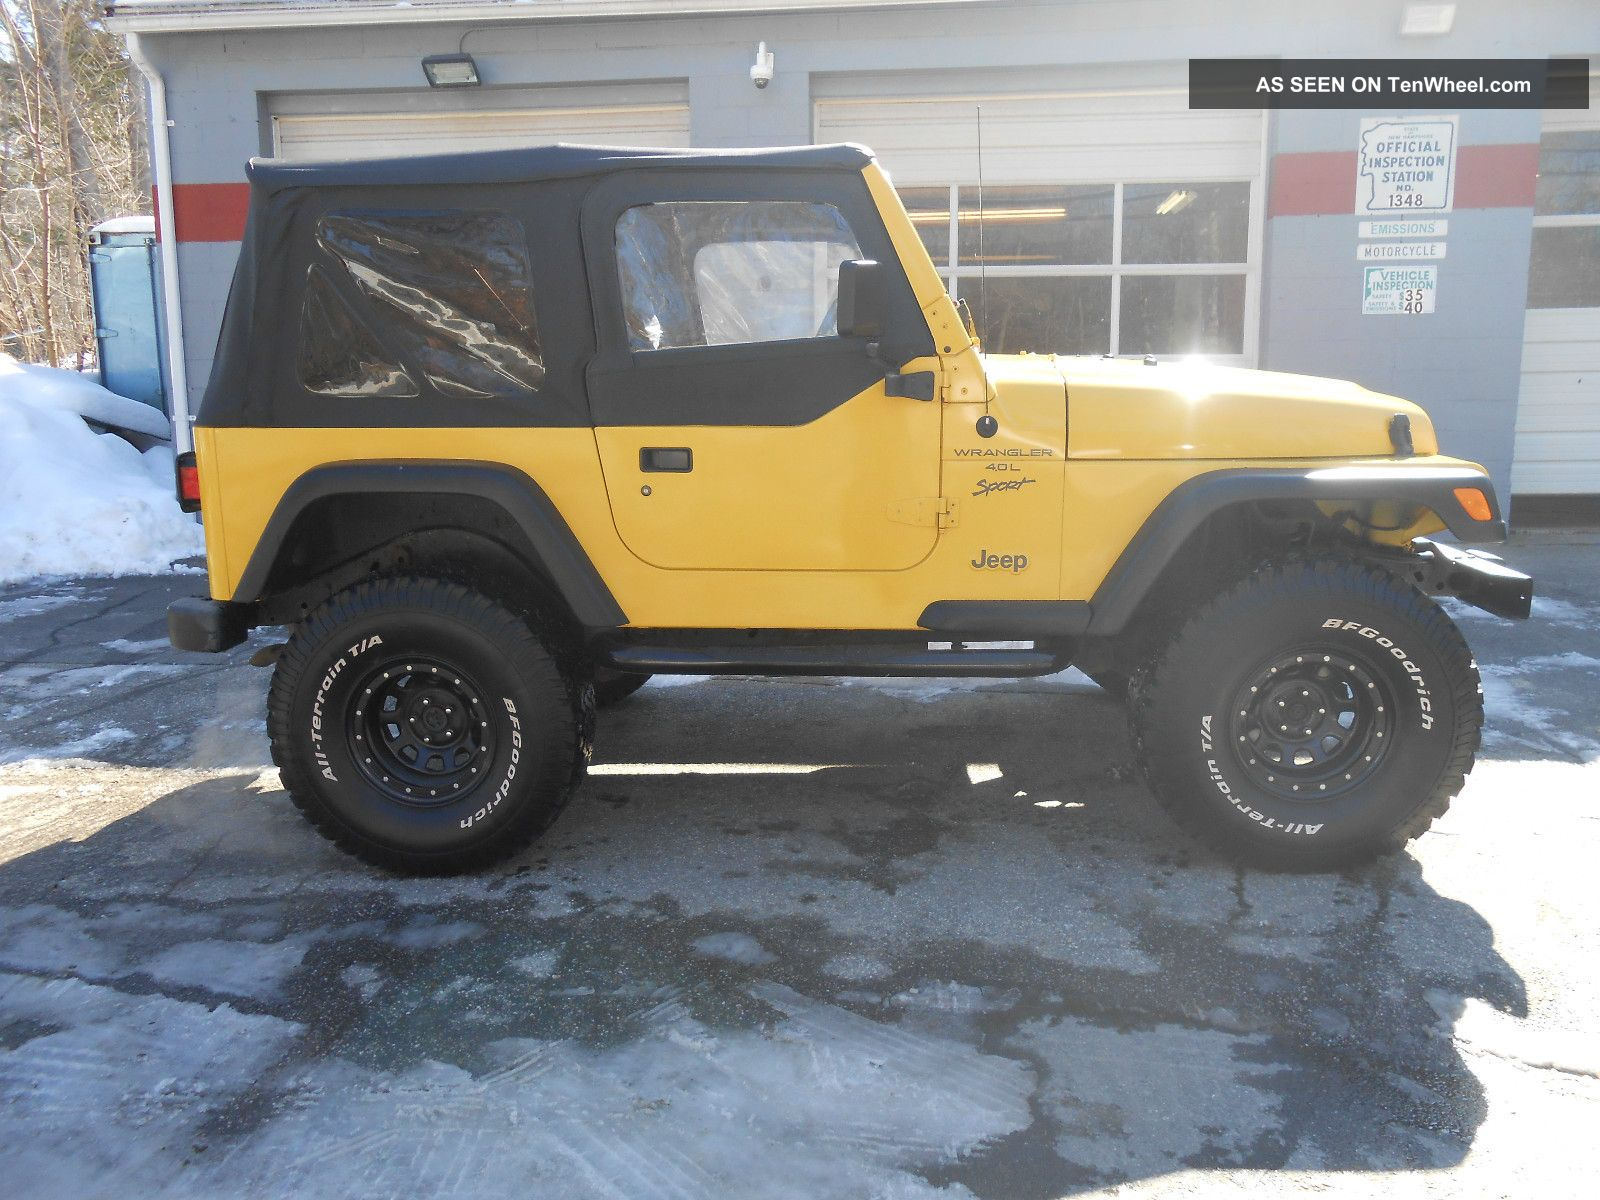 Jeep Wrangler 4 Door Lifted Yellow 2001 jeep wrangler sport sportJeep Wrangler 4 Door Lifted